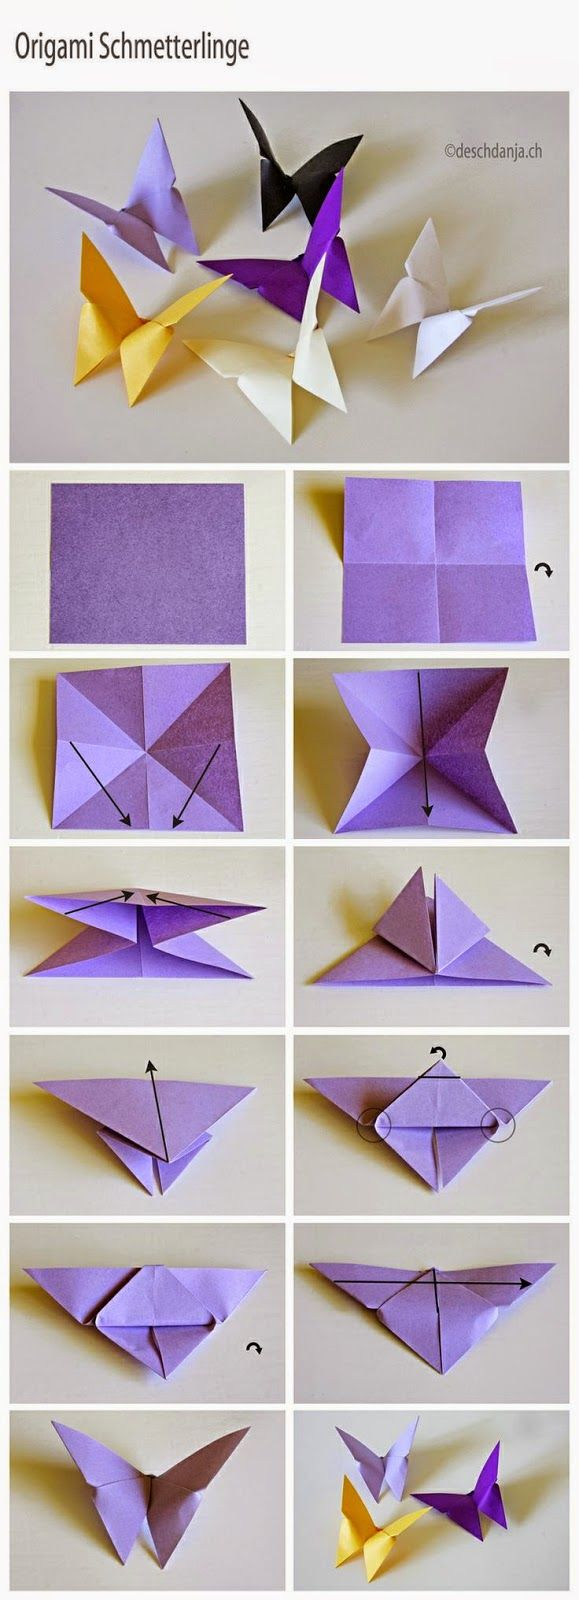 From Famf Tower Origami Rama Rama Yang Mudah Butterfly Crafts Paper Crafts Paper Craft Projects